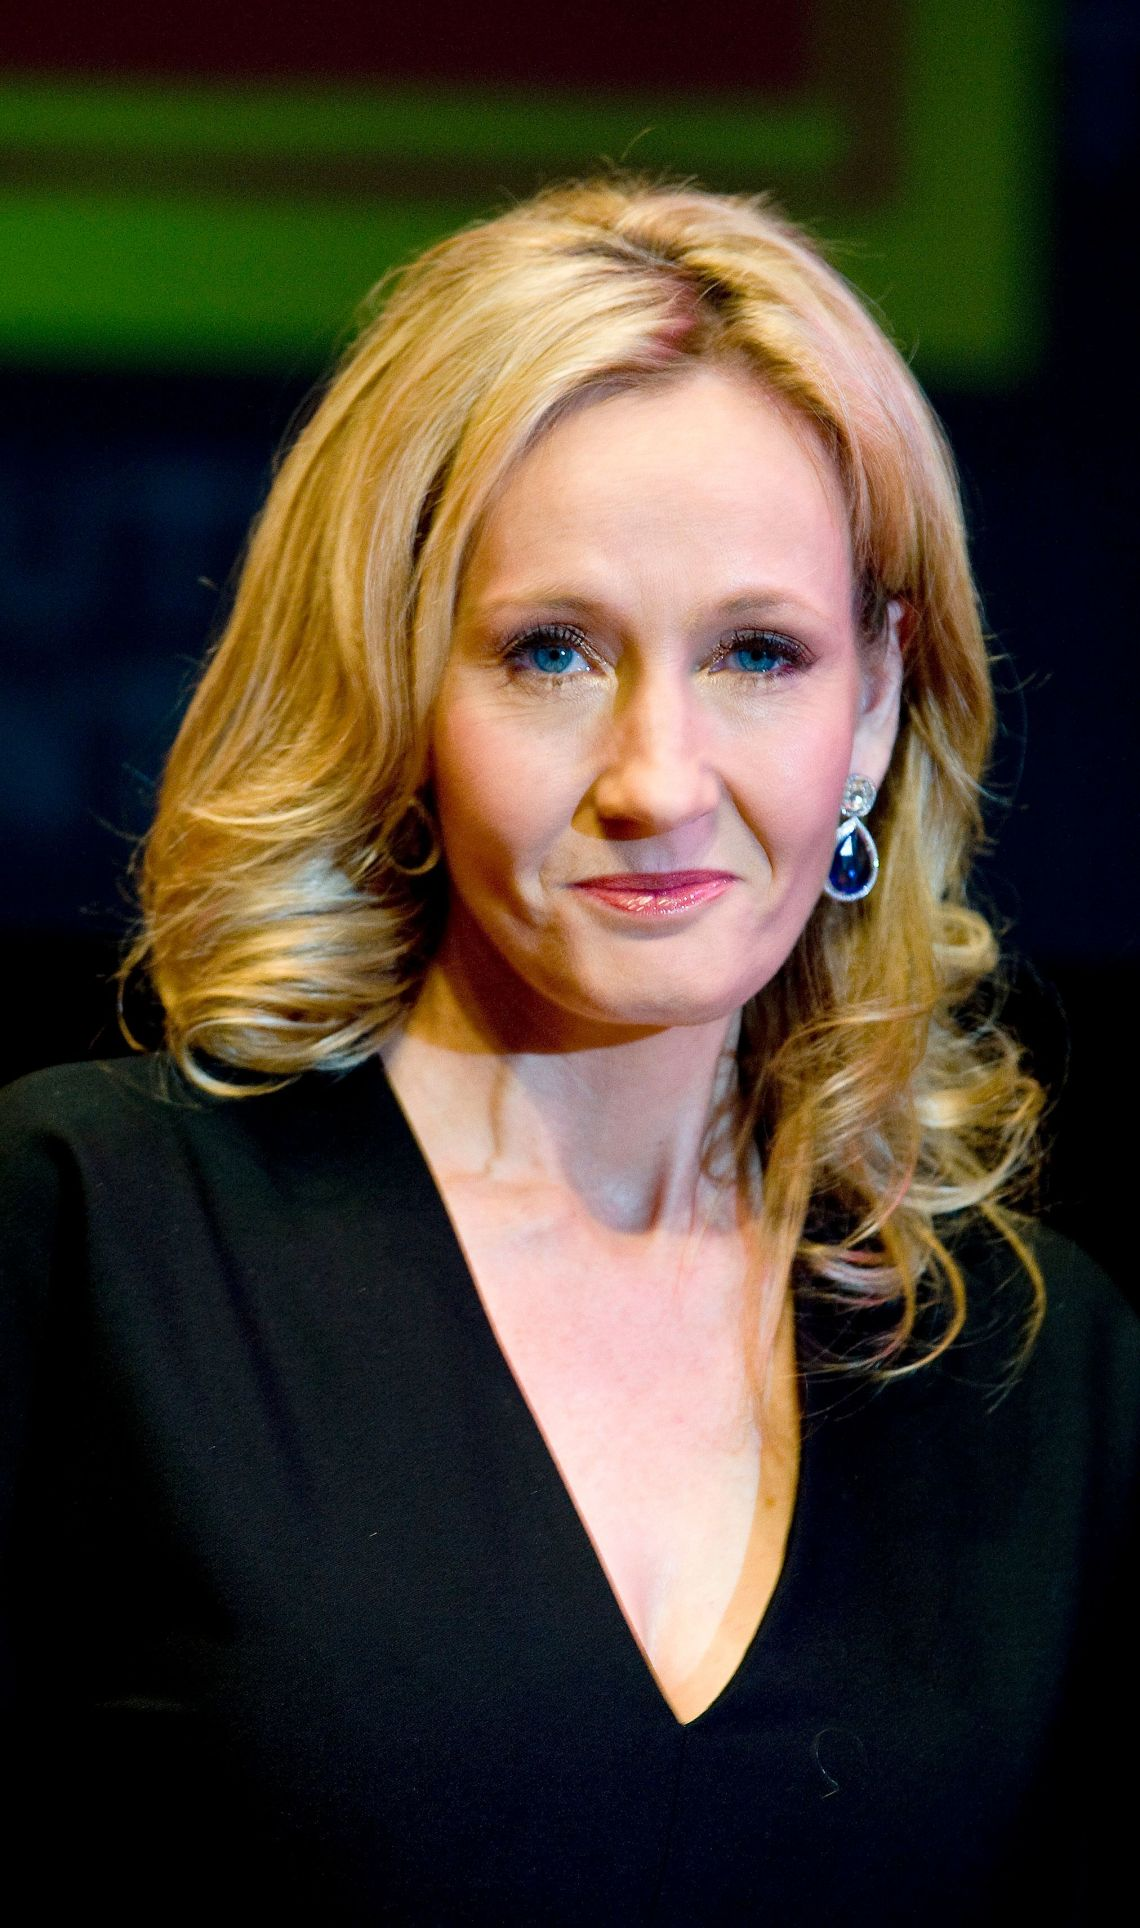 J.K Rowling Among 100 Writers And Activists Calling For UN Investigation Into Khashoggi Death